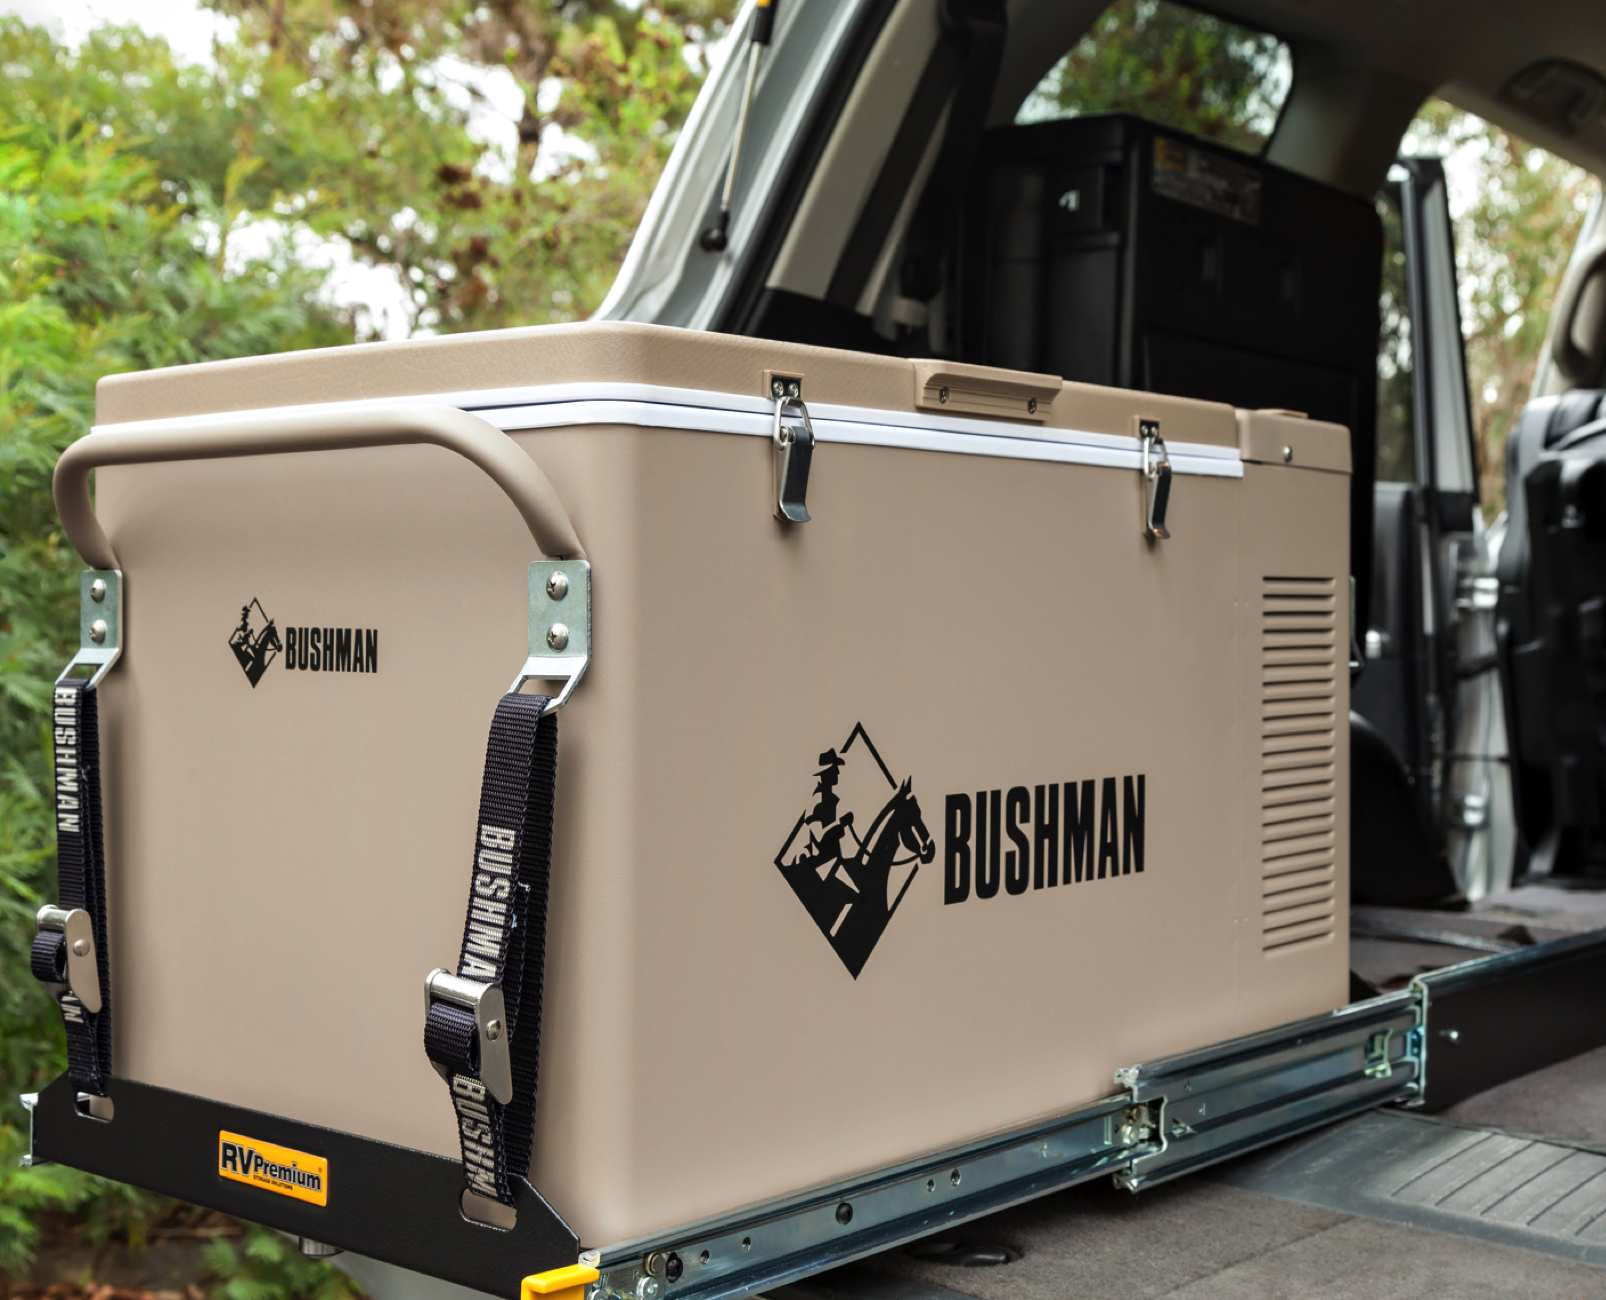 Camping Fridge Compressors - Bushman